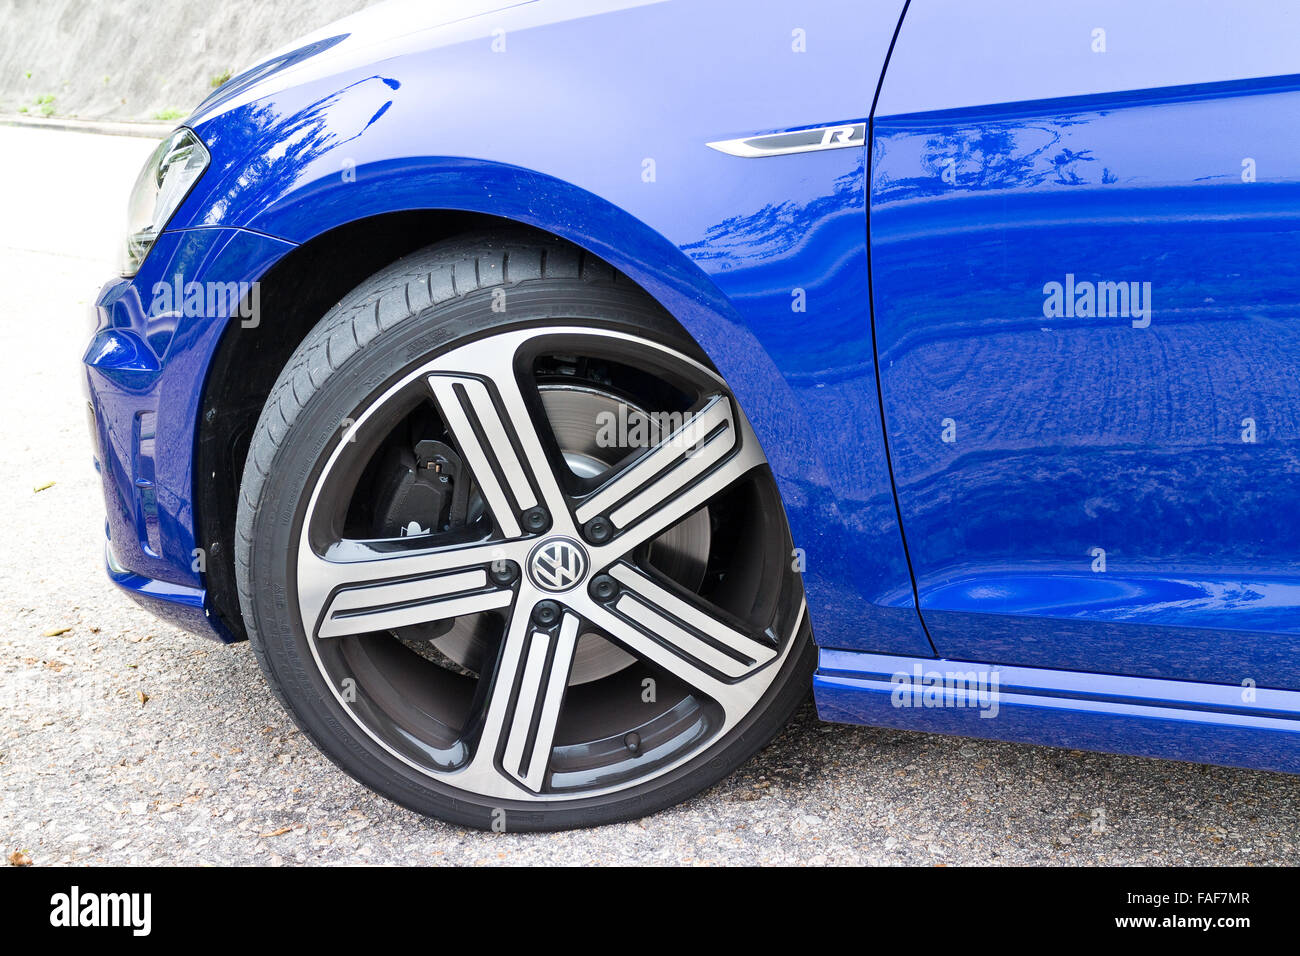 Hong Kong, China April 16, 2014 : Volkswagen Golf R 2014 2015 Version wheel on April 16 2014 in Hong Kong. - Stock Image